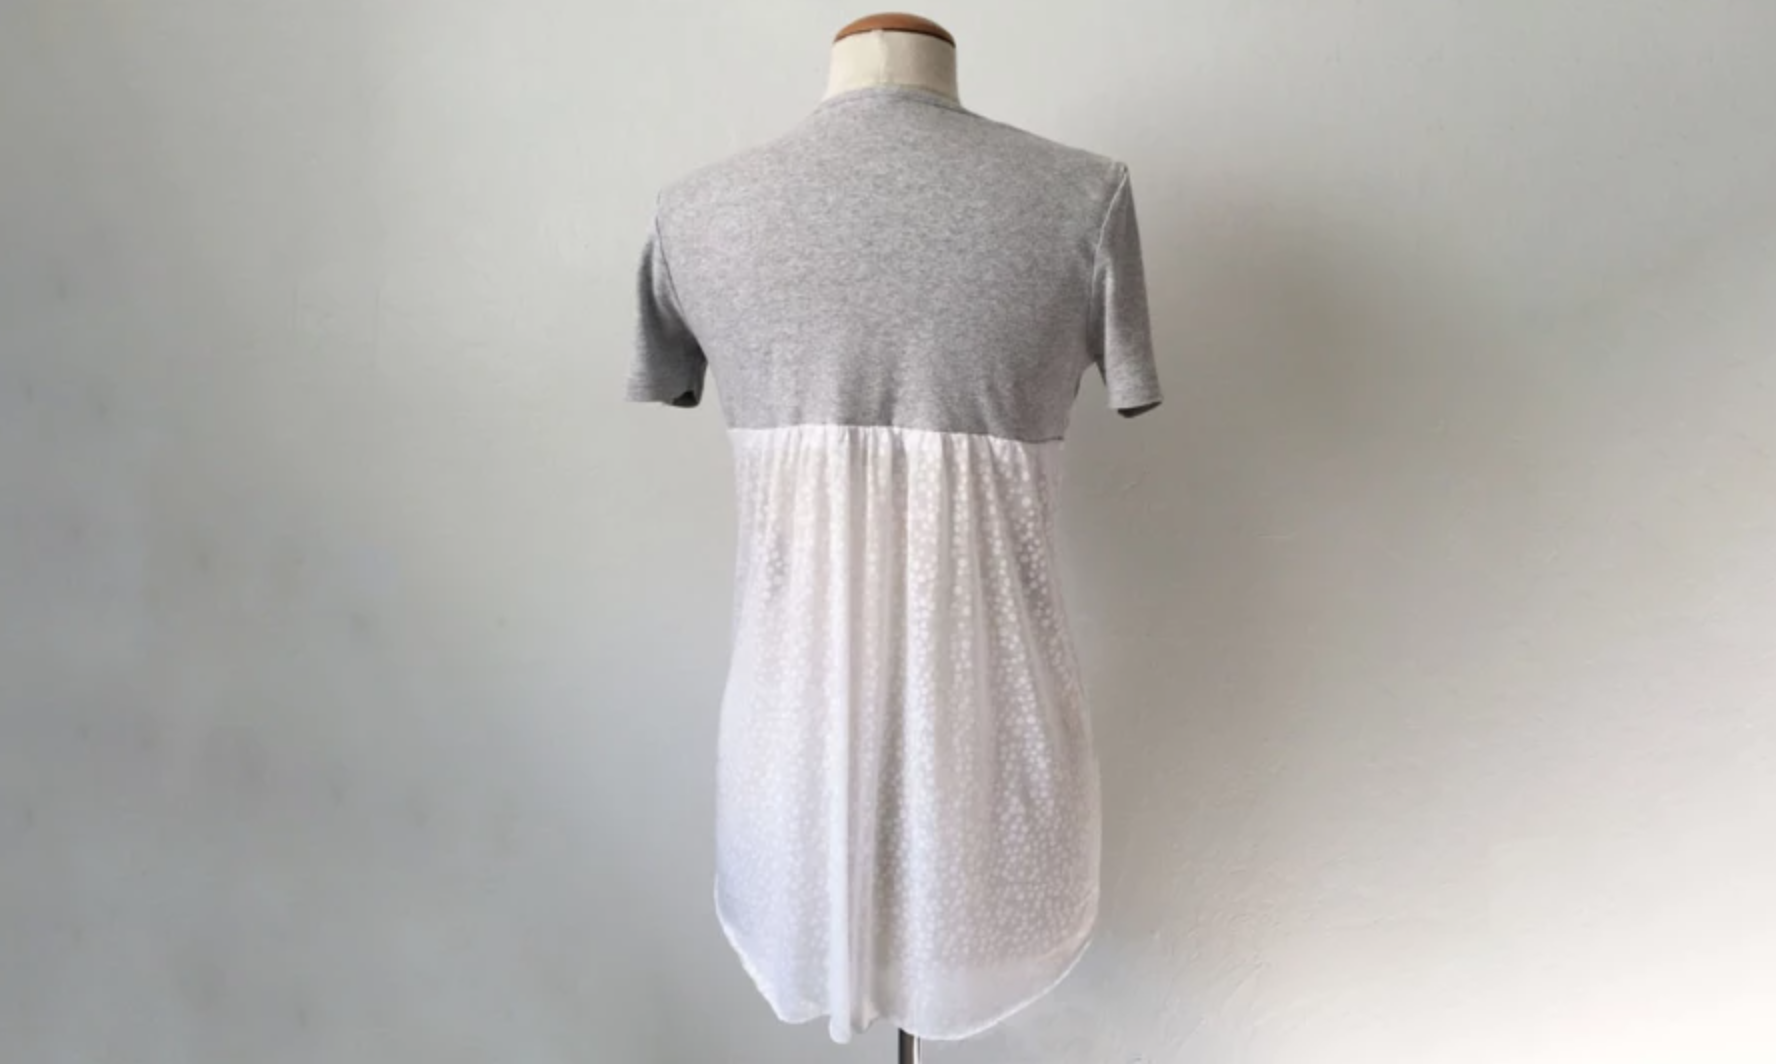 t-shirt with sheer panel